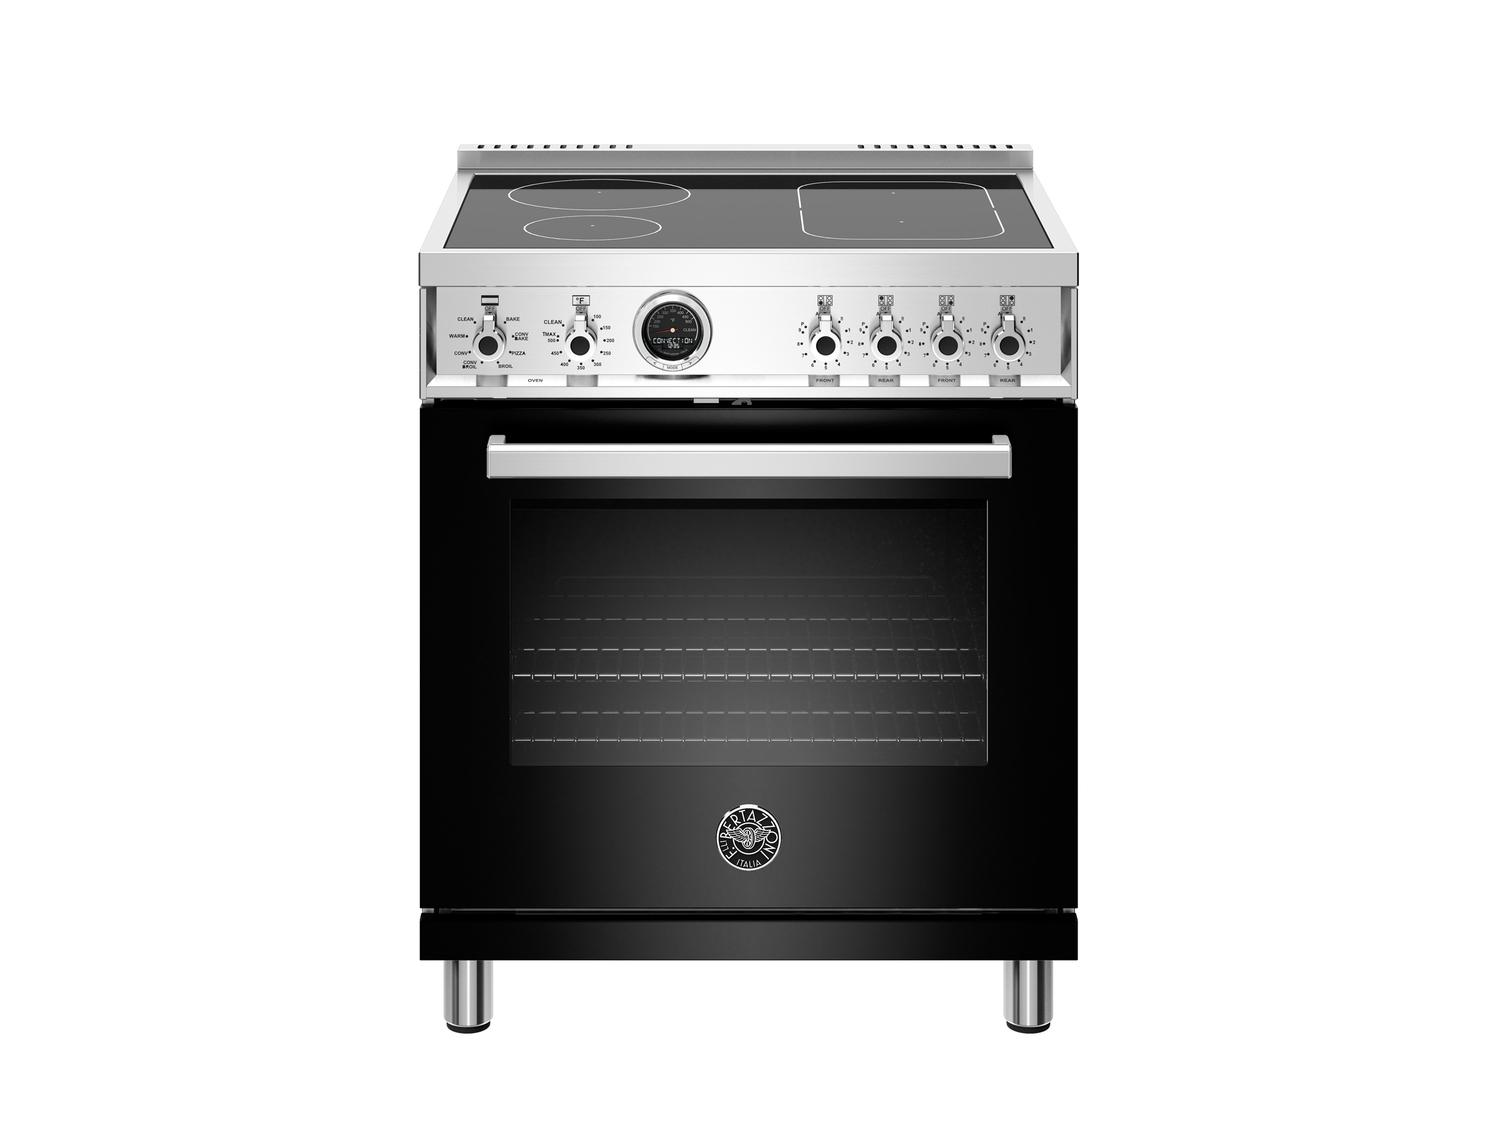 Bertazzoni30 Inch Induction Range, 4 Heating Zones, Electric Self-Clean Oven Nero